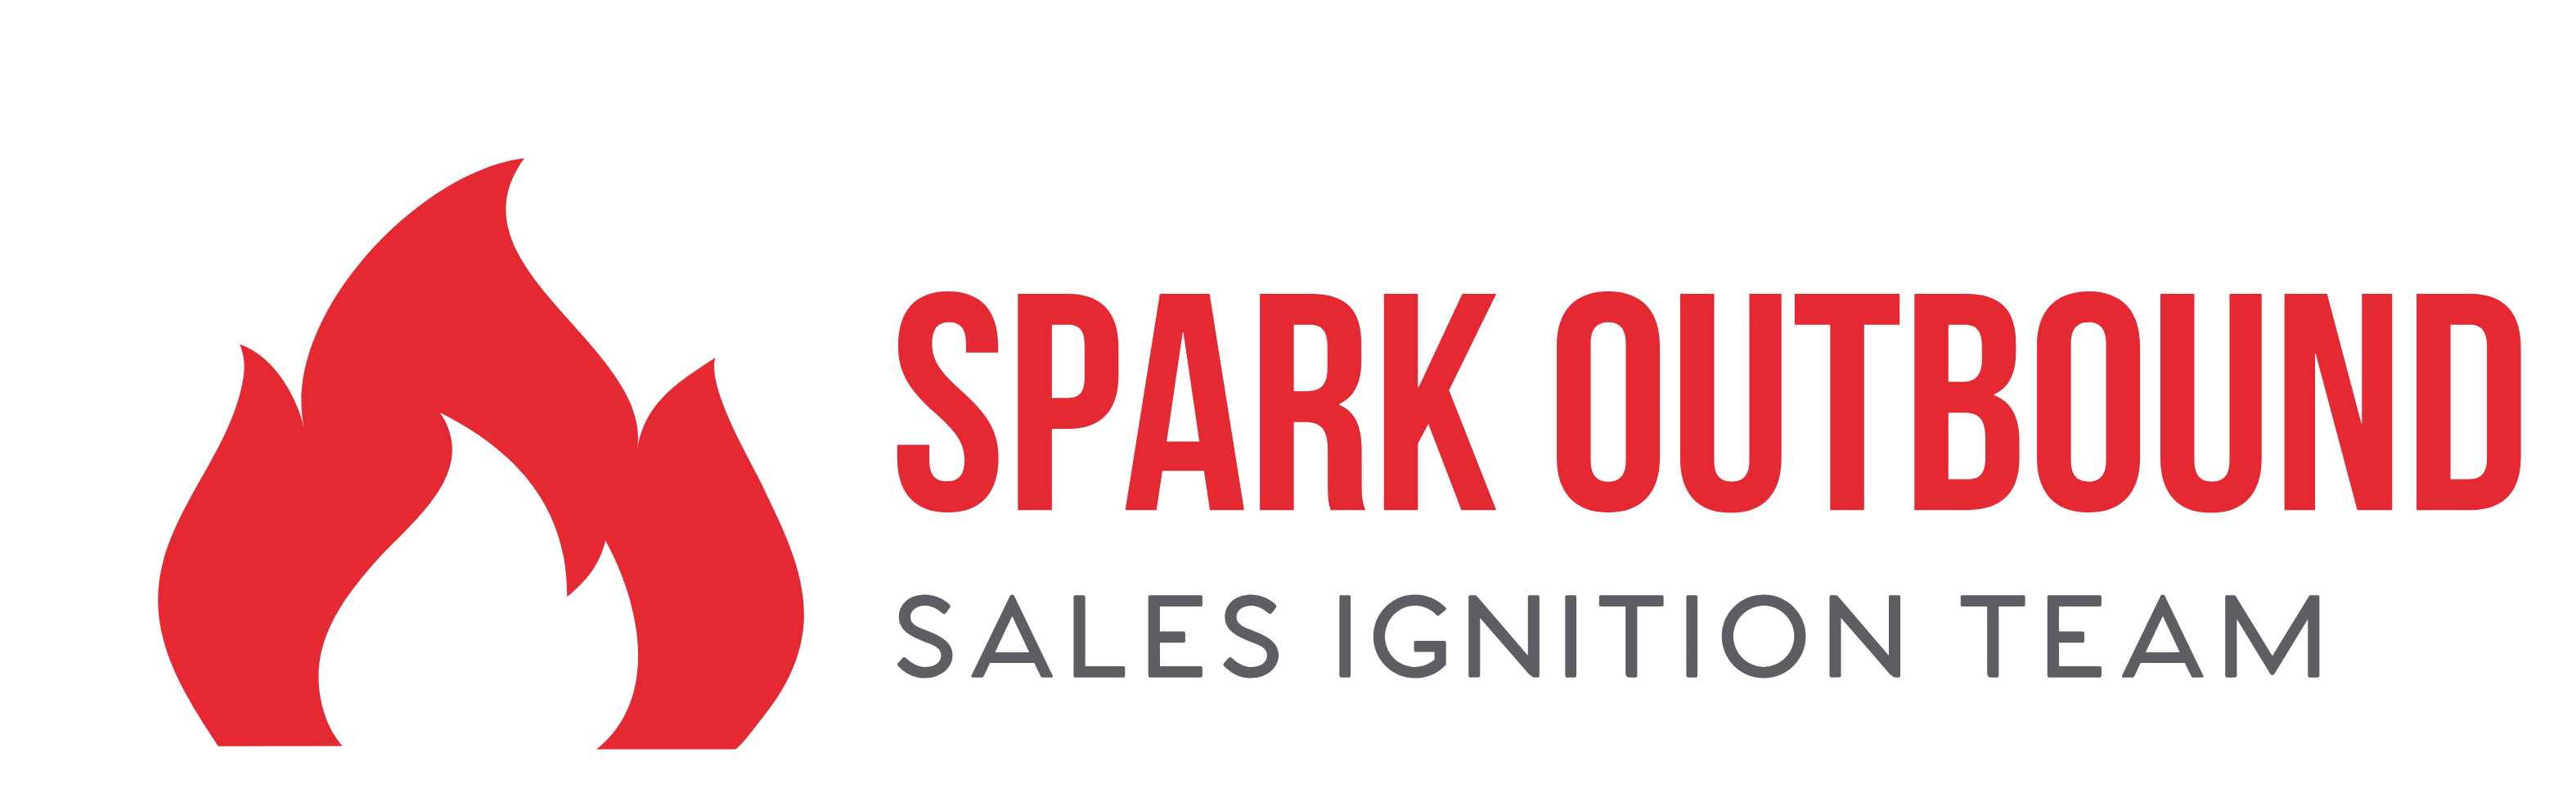 Spark Outbound Offers Simplified LinkedIn Lead Generation Solutions for Small Business Owners